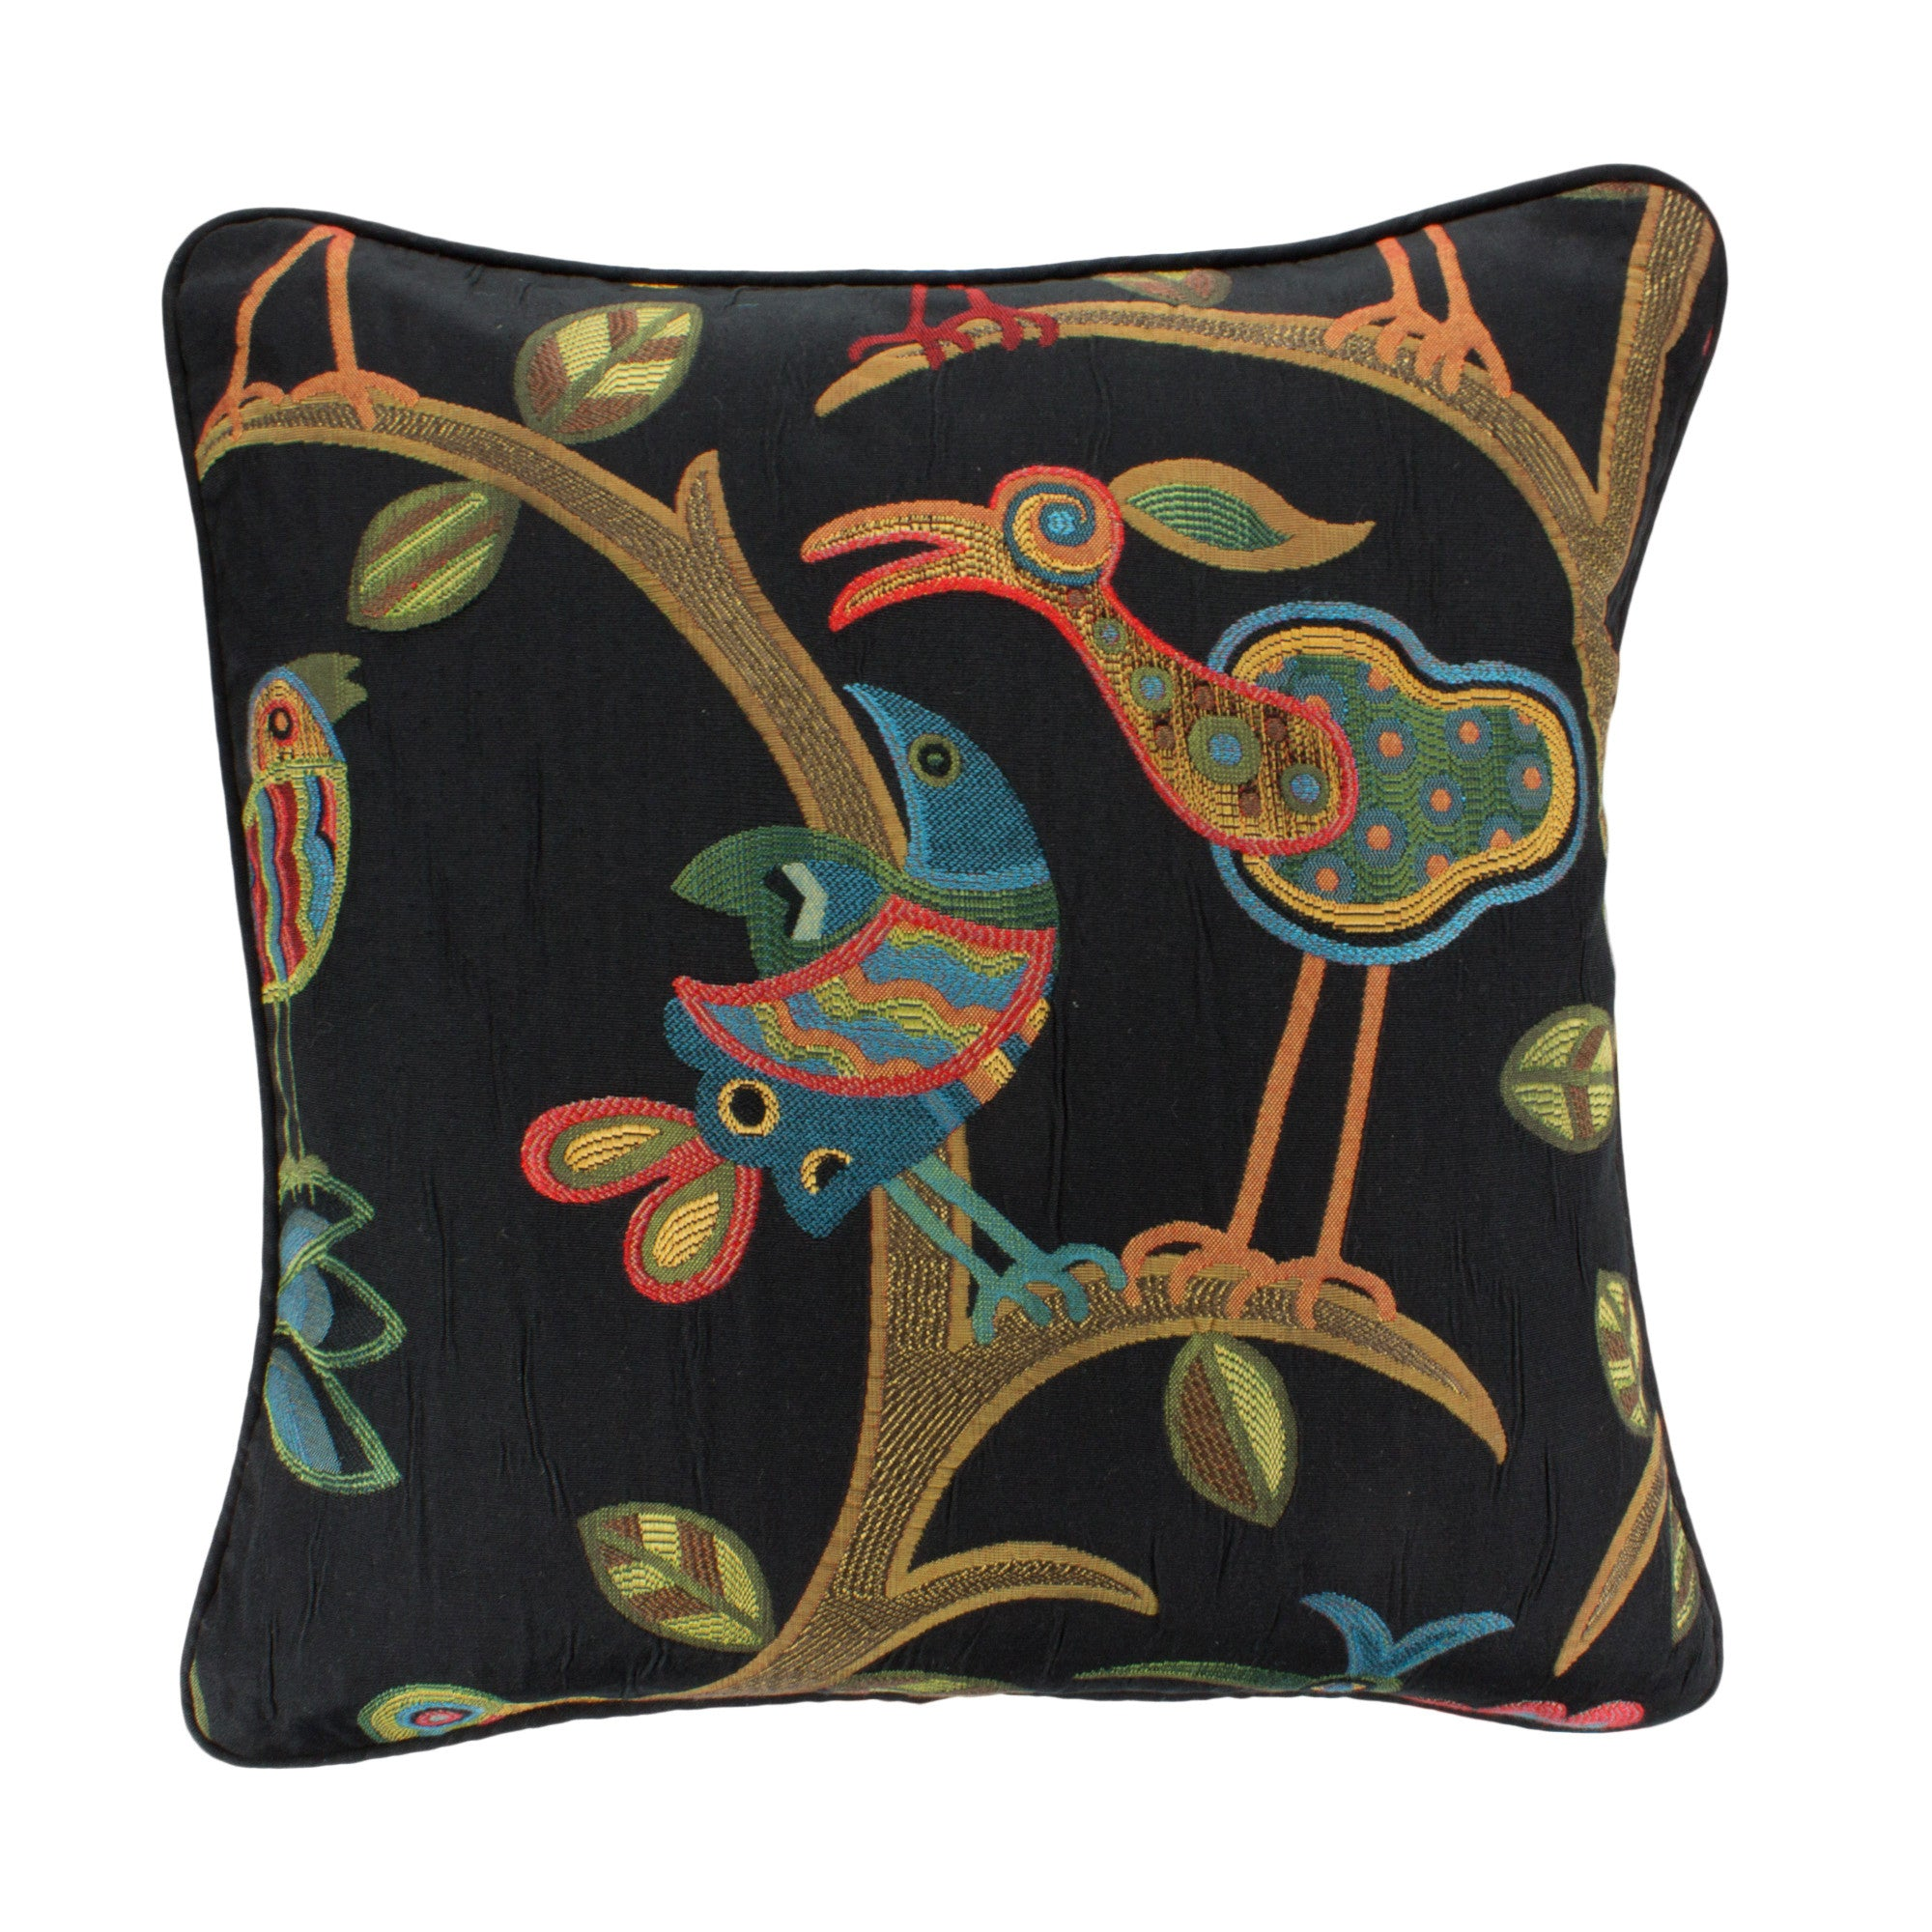 cotton amazon mustard printed kitchen pillow luxury covers co cushion size dp decorative home uk paisley cover